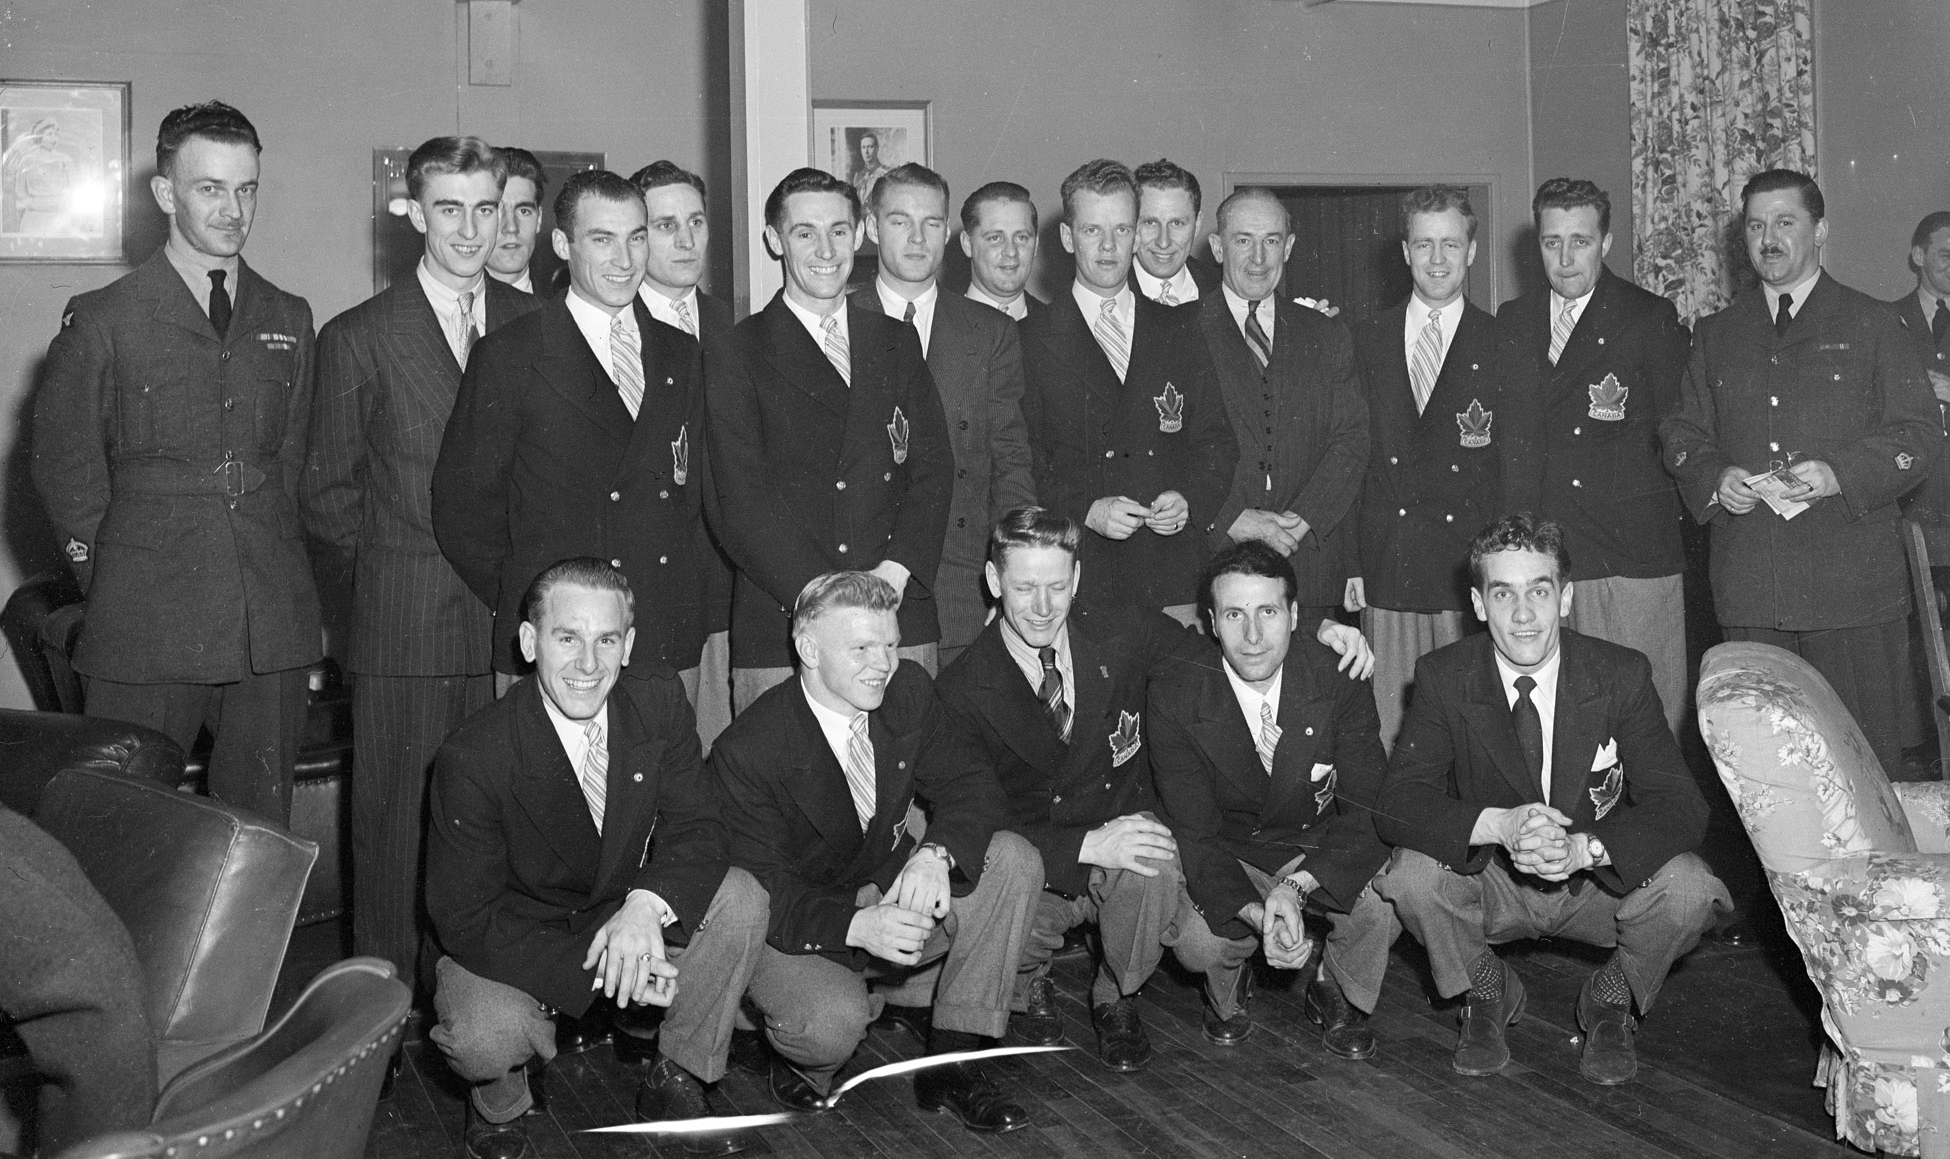 "The 1948 Olympic Champion RCAF Flyers gather for a photograph after receiving a tremendous ovation in the Sergeant's Mess at Ottawa's Beaver Barracks on April 8, 1948. Front row (left to right): Reg Schroeter, Orval Gravelle, Roy Forbes, Patsy Guzzo and Ted Hibberd. Back row (left to right): Warrant Officer Class 2 W.H. Fader, vice-president of the mess, Murray Dowey, Pete Lietchnitz, Hubert Brooks, Frank Dunster, Ab Renaud, George Mara, Louis LeCompte, Ross King, Sandy Watson, George ""Buck"" Boucher, Frank Boucher, Corporal George McFaul and Warrant Officer Class 2 Colin Campbell. Absent from the photo are André Laperrière and Wally Halder. George Boucher, Sergeant Frank Boucher's father, assisted in selecting the team, but could not be a member as he was a professional NHL player. PHOTO: DND Archives, PL-38853"